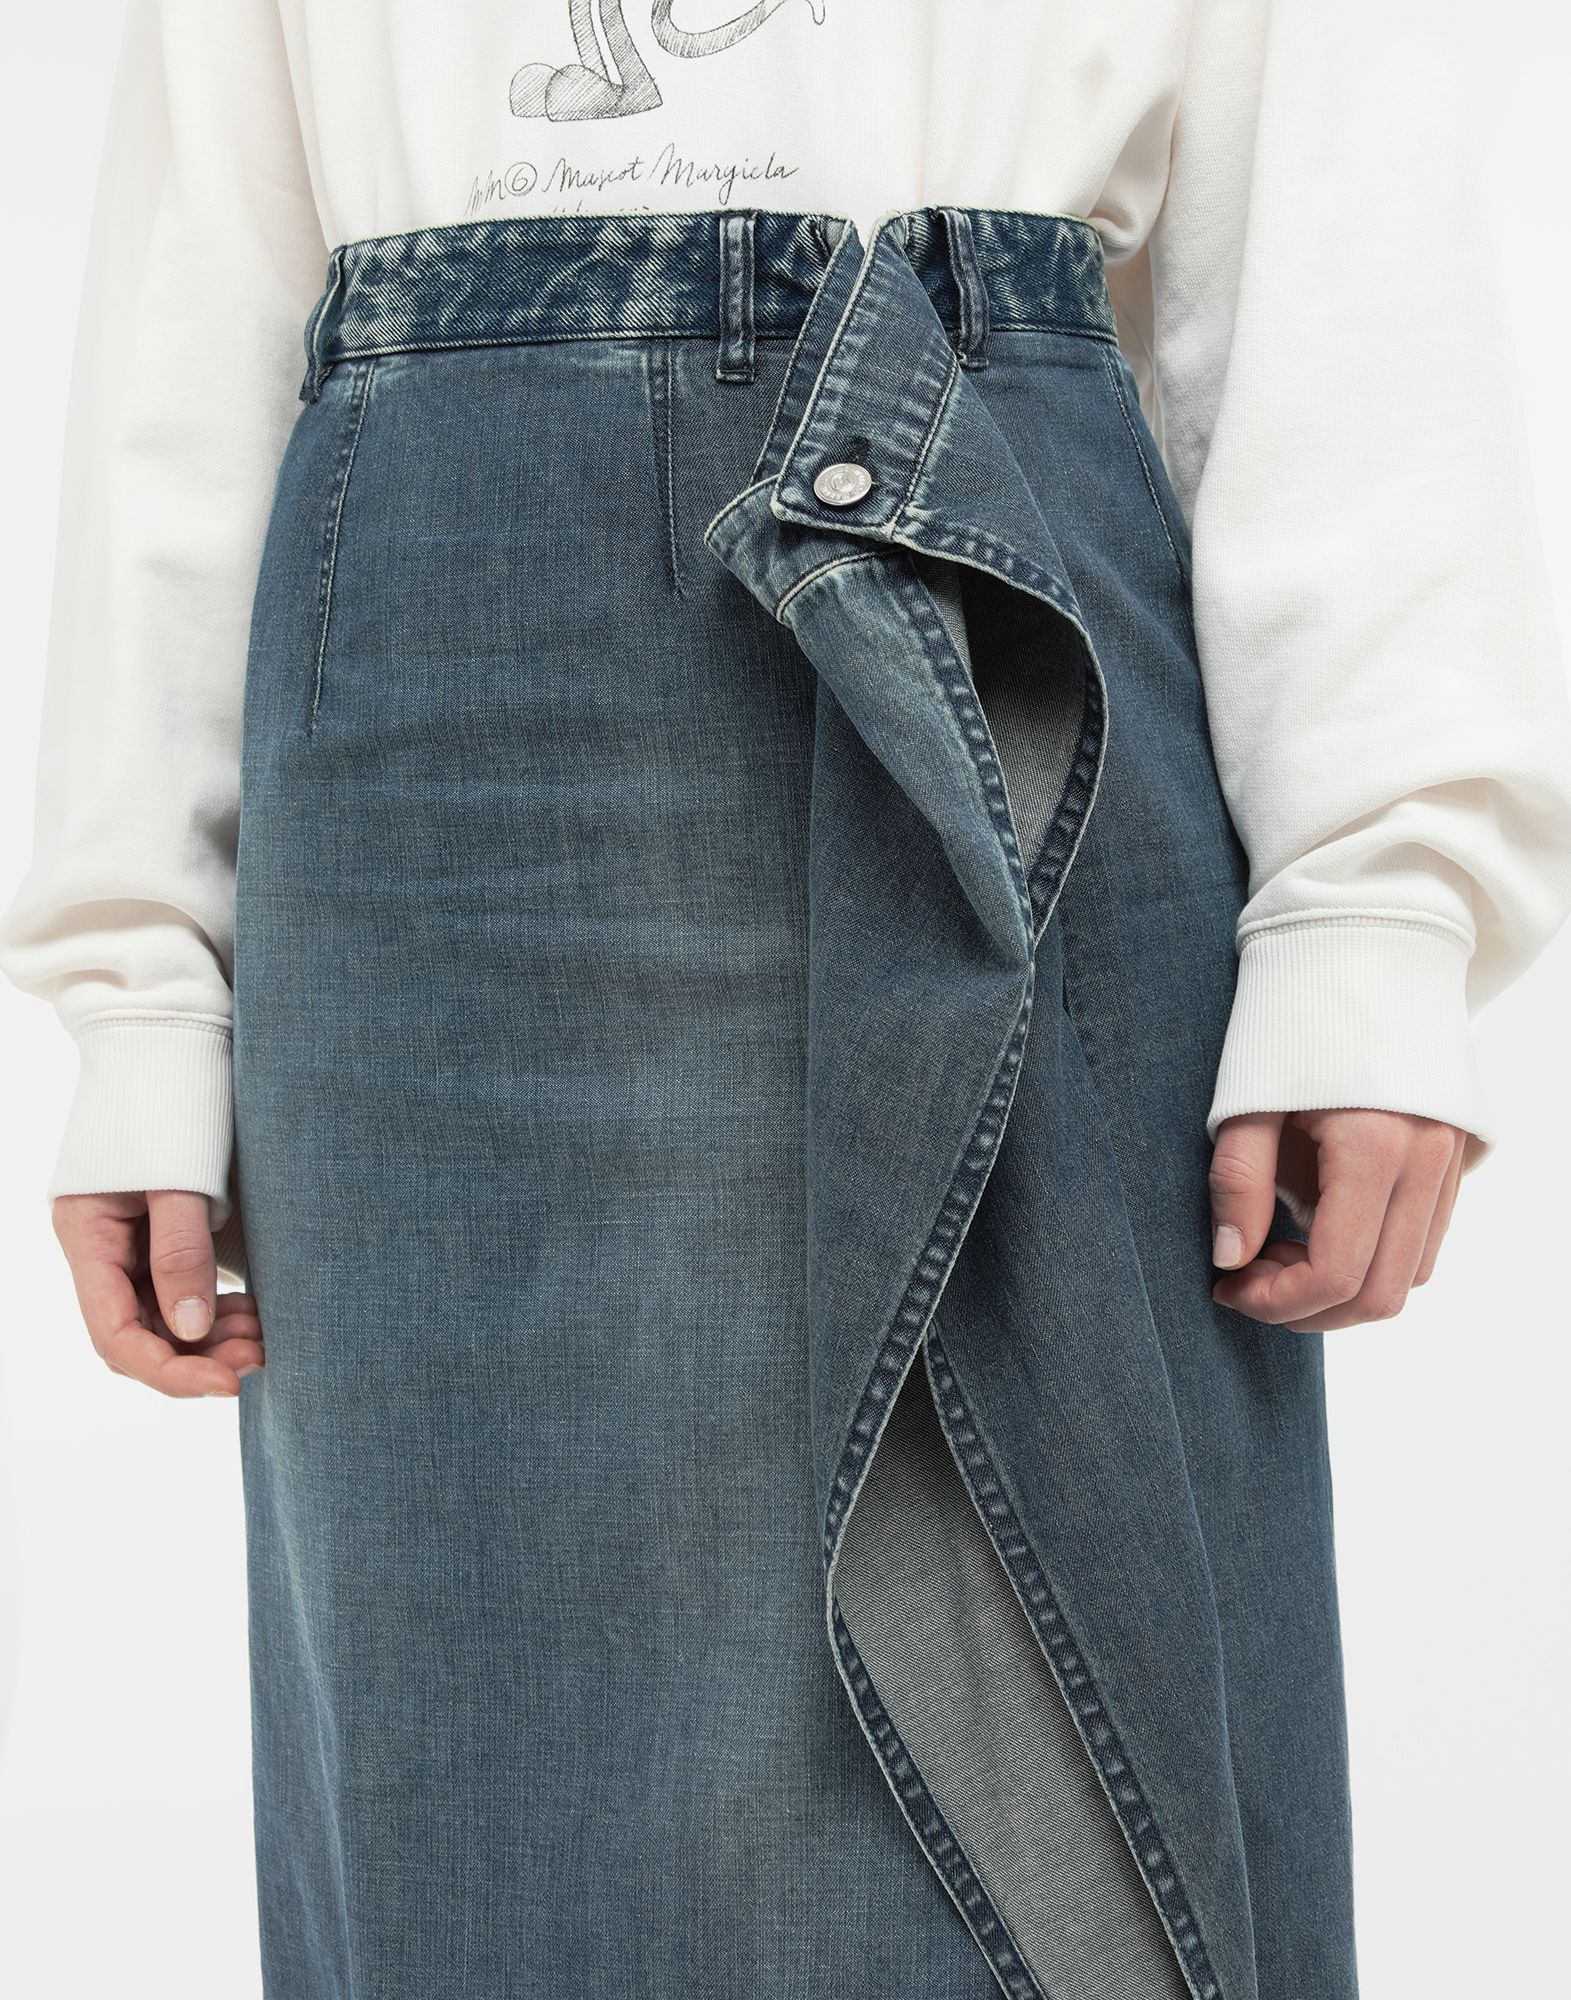 MM6 MAISON MARGIELA Wrap denim skirt Denim skirt Woman a